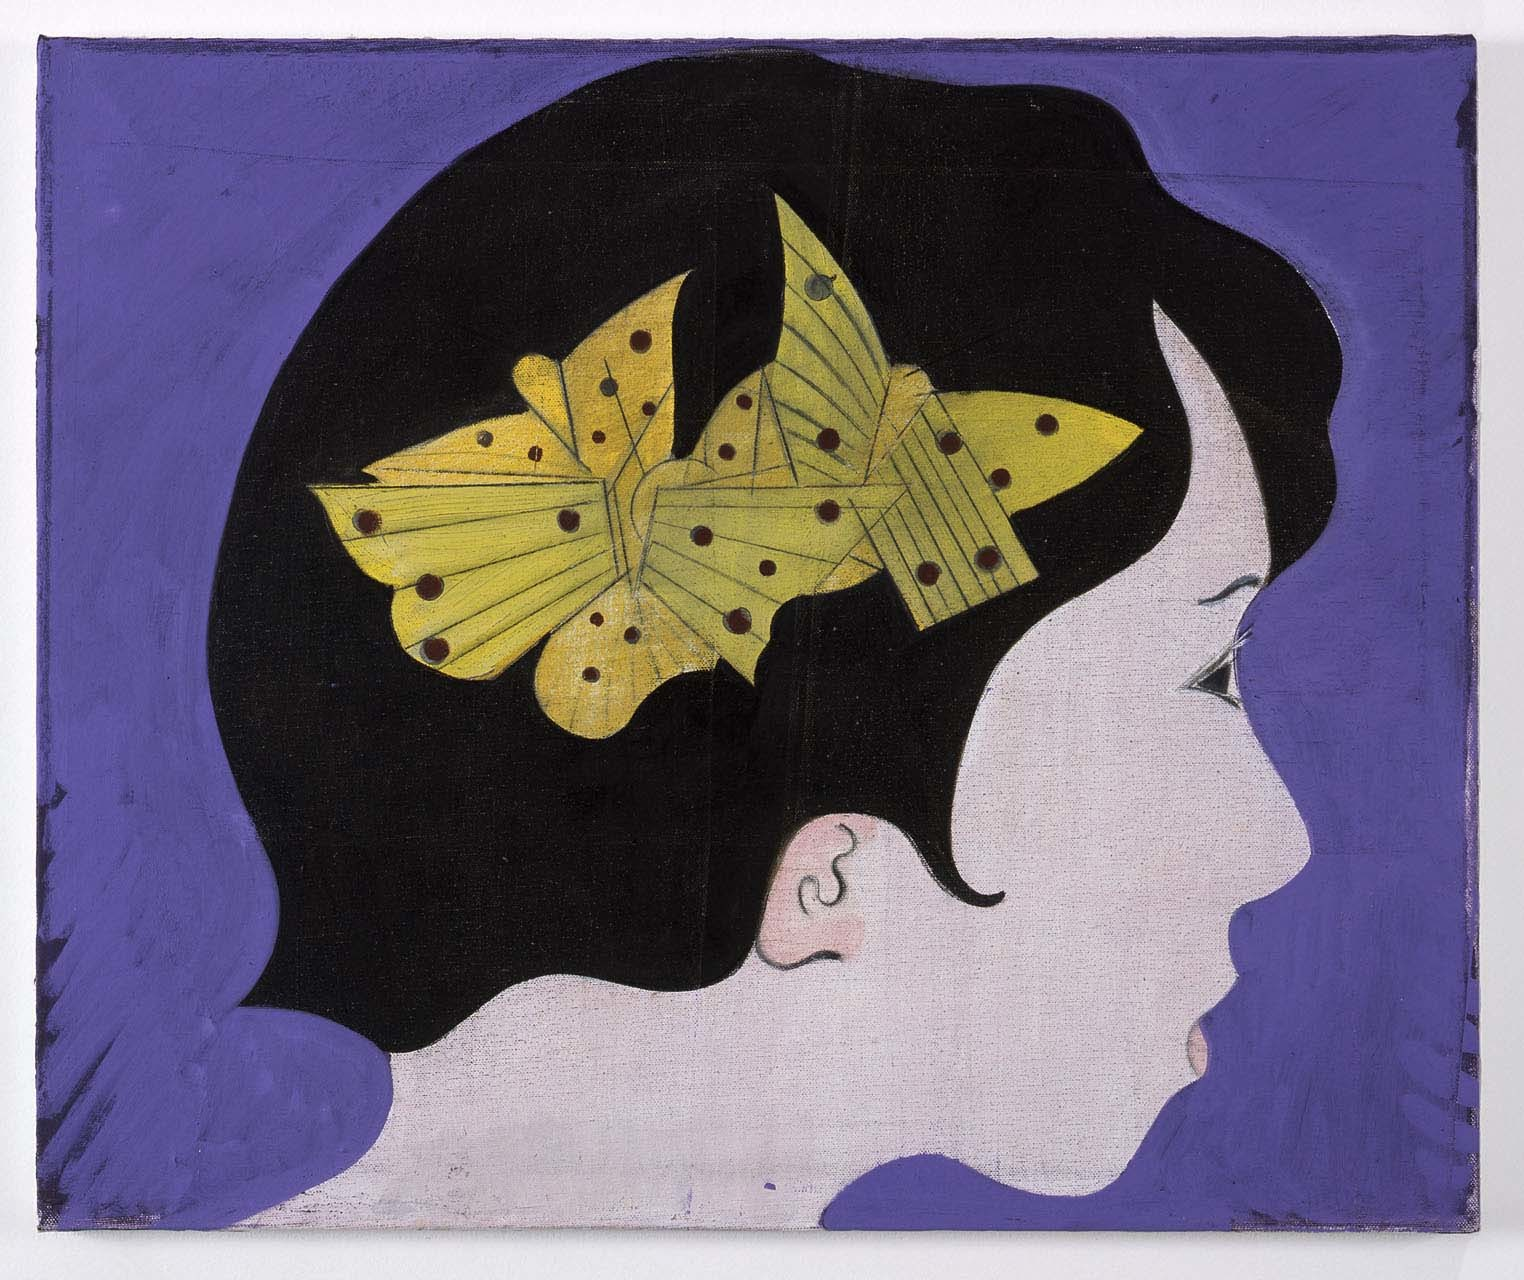 "<div class=""artwork_caption""><p>Girl with Butterflies in Hair, 2010</p></div>"